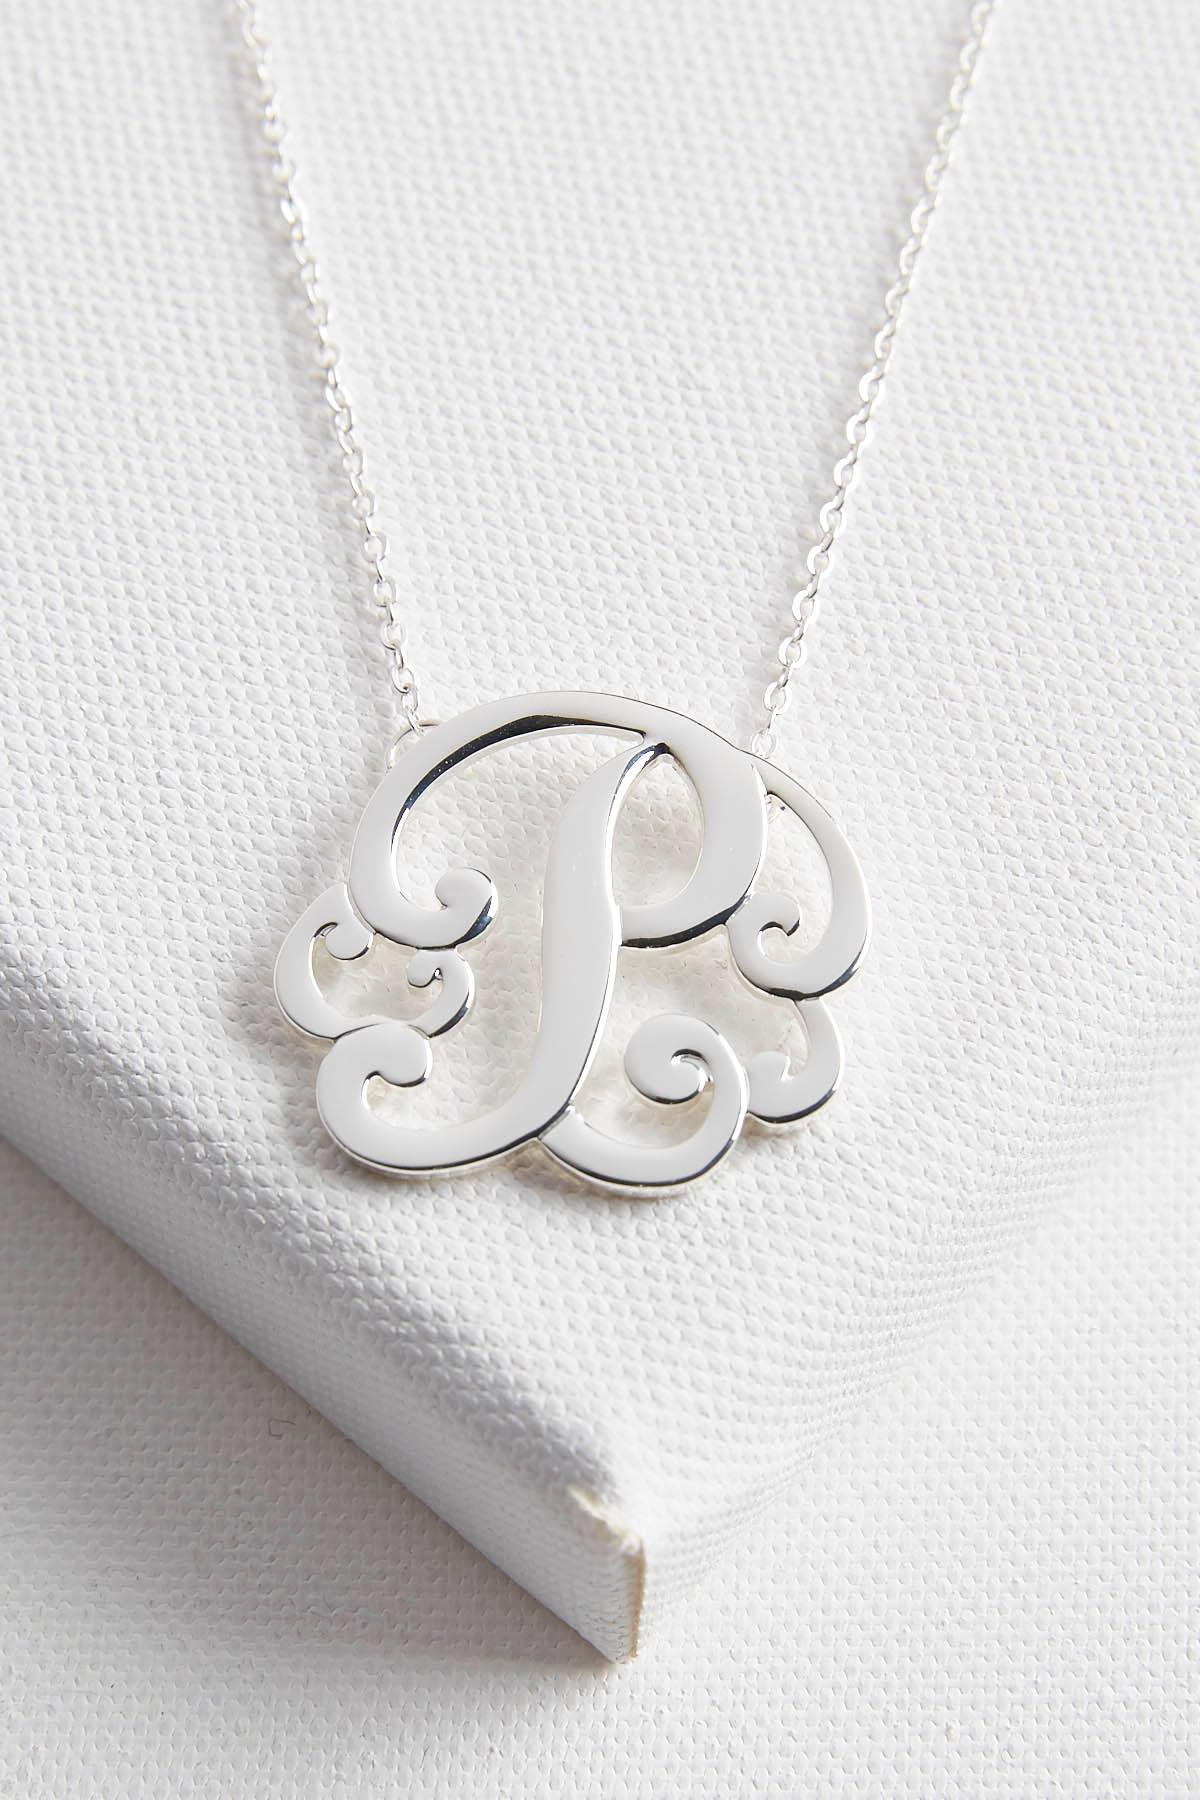 Initial Scroll Brass Pendant Necklace- P